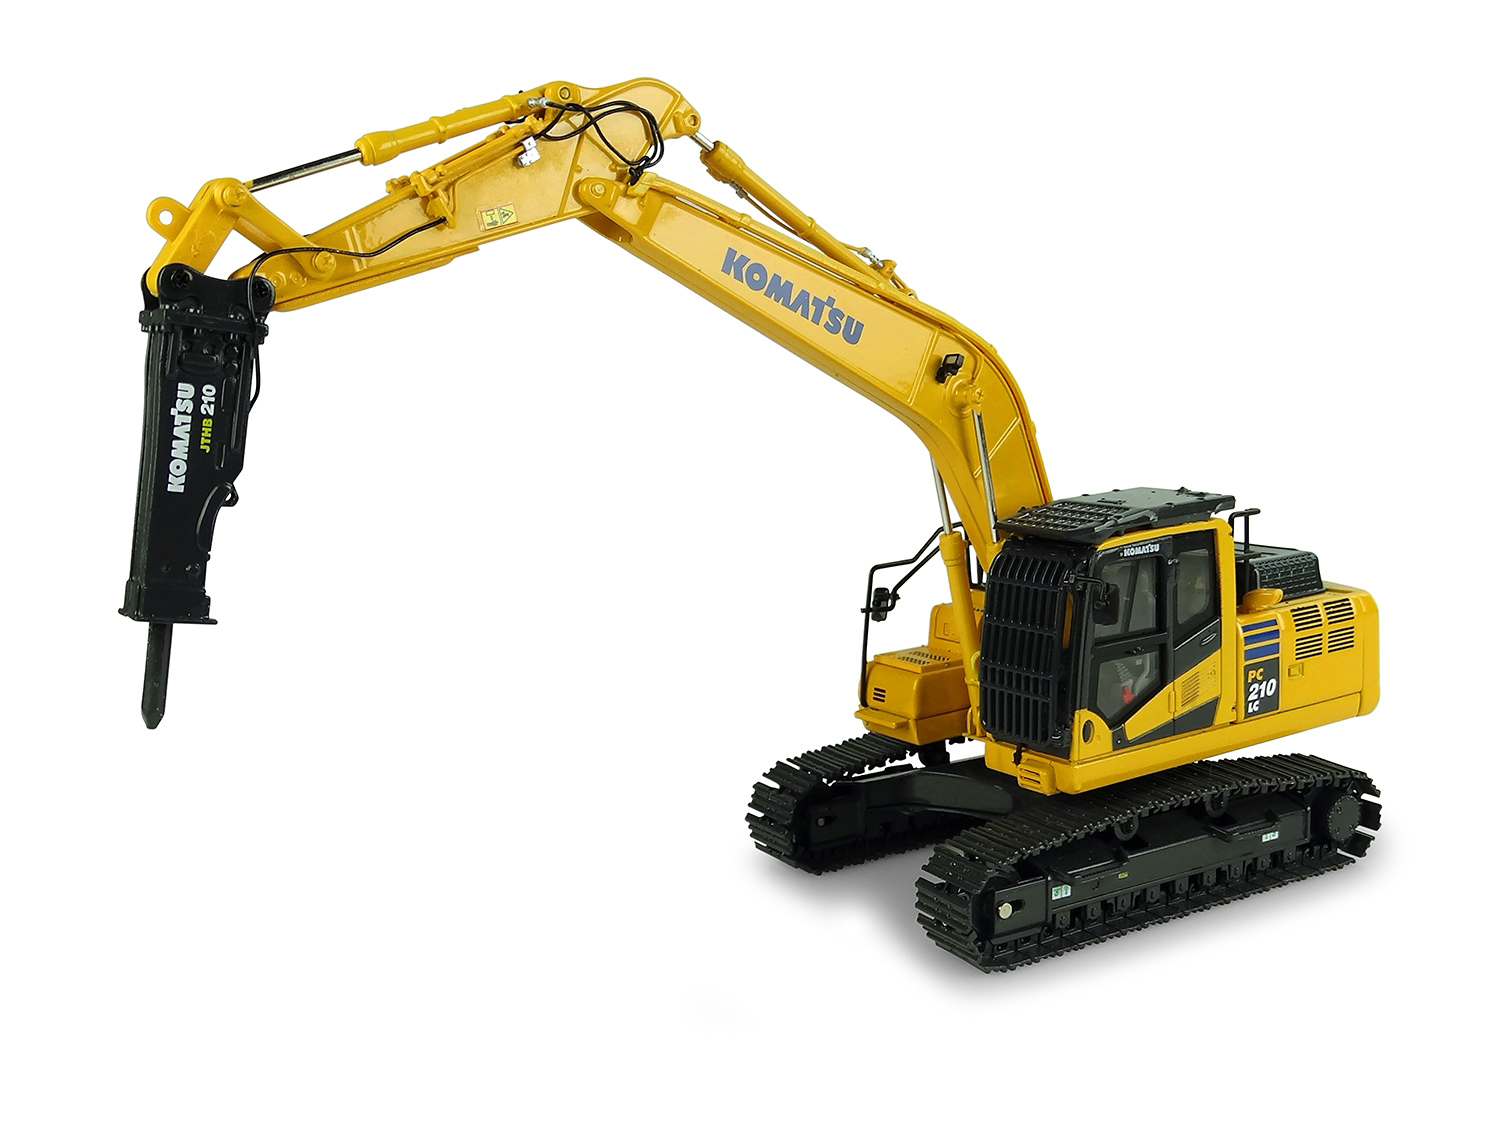 Komatsu PC210LC-11 Tracked Excavator with Hammer Drill 1/50 Diecast Model by Universal Hobbies